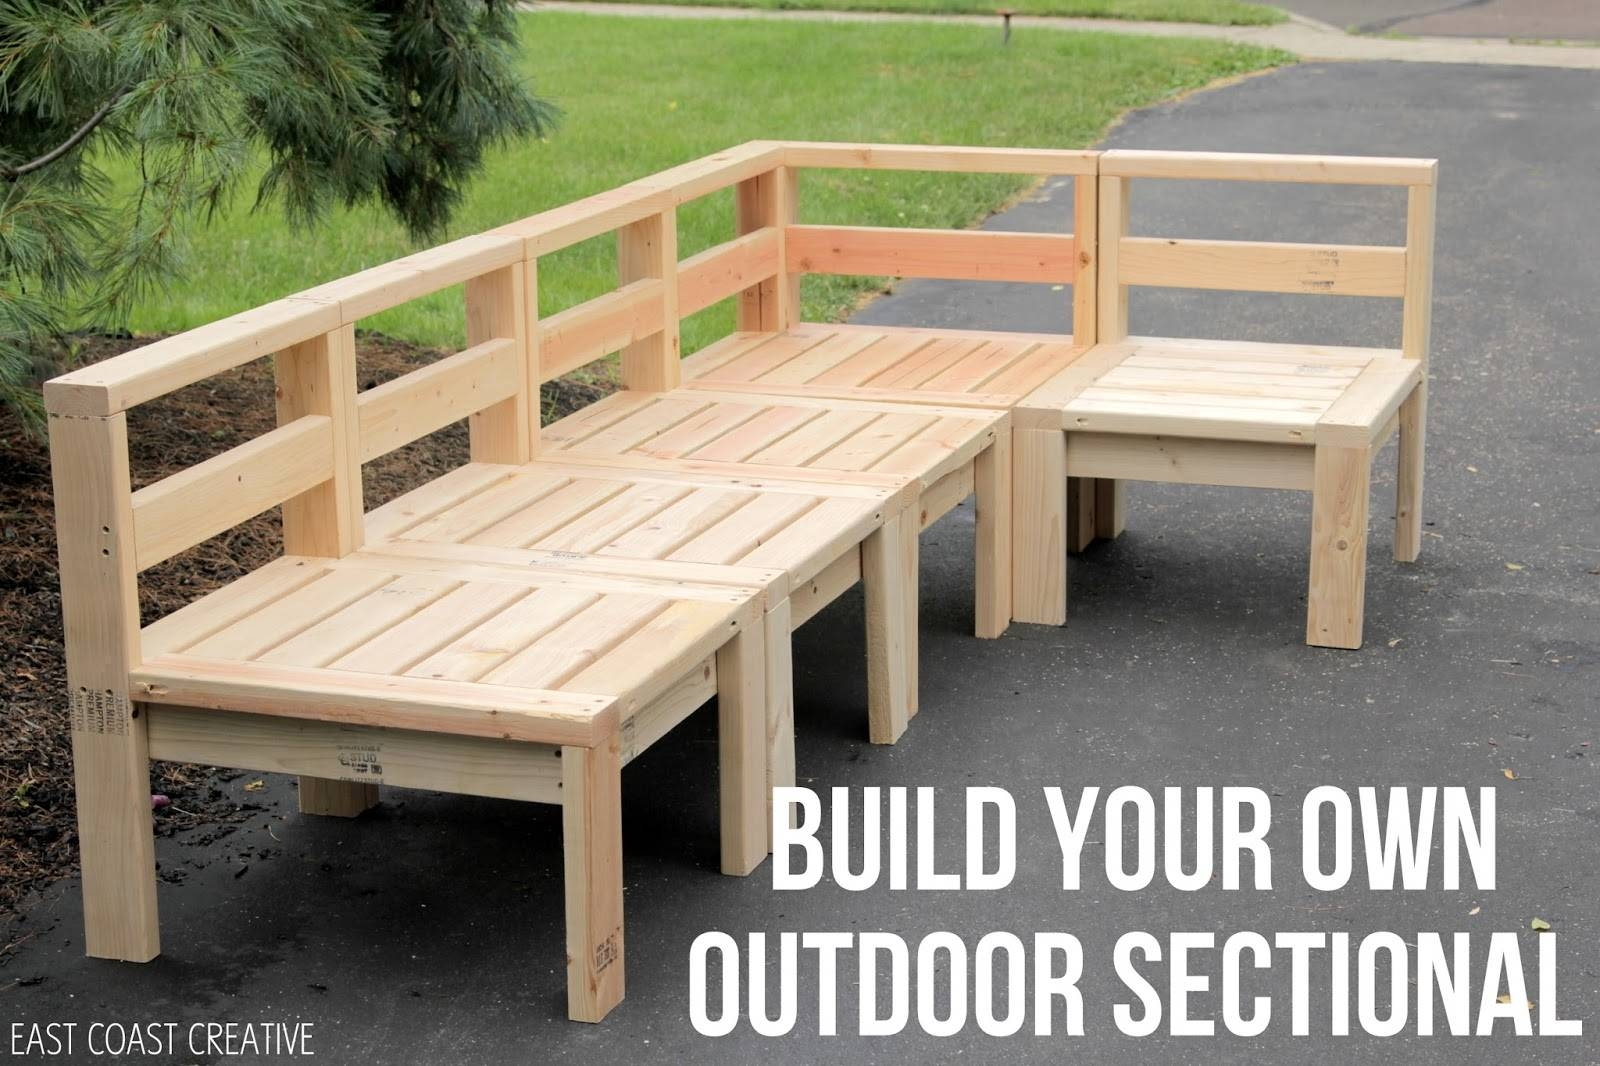 How To Build An Outdoor Sectional {knock It Off} – East Coast With Diy Sectional Sofa Frame Plans (View 14 of 30)